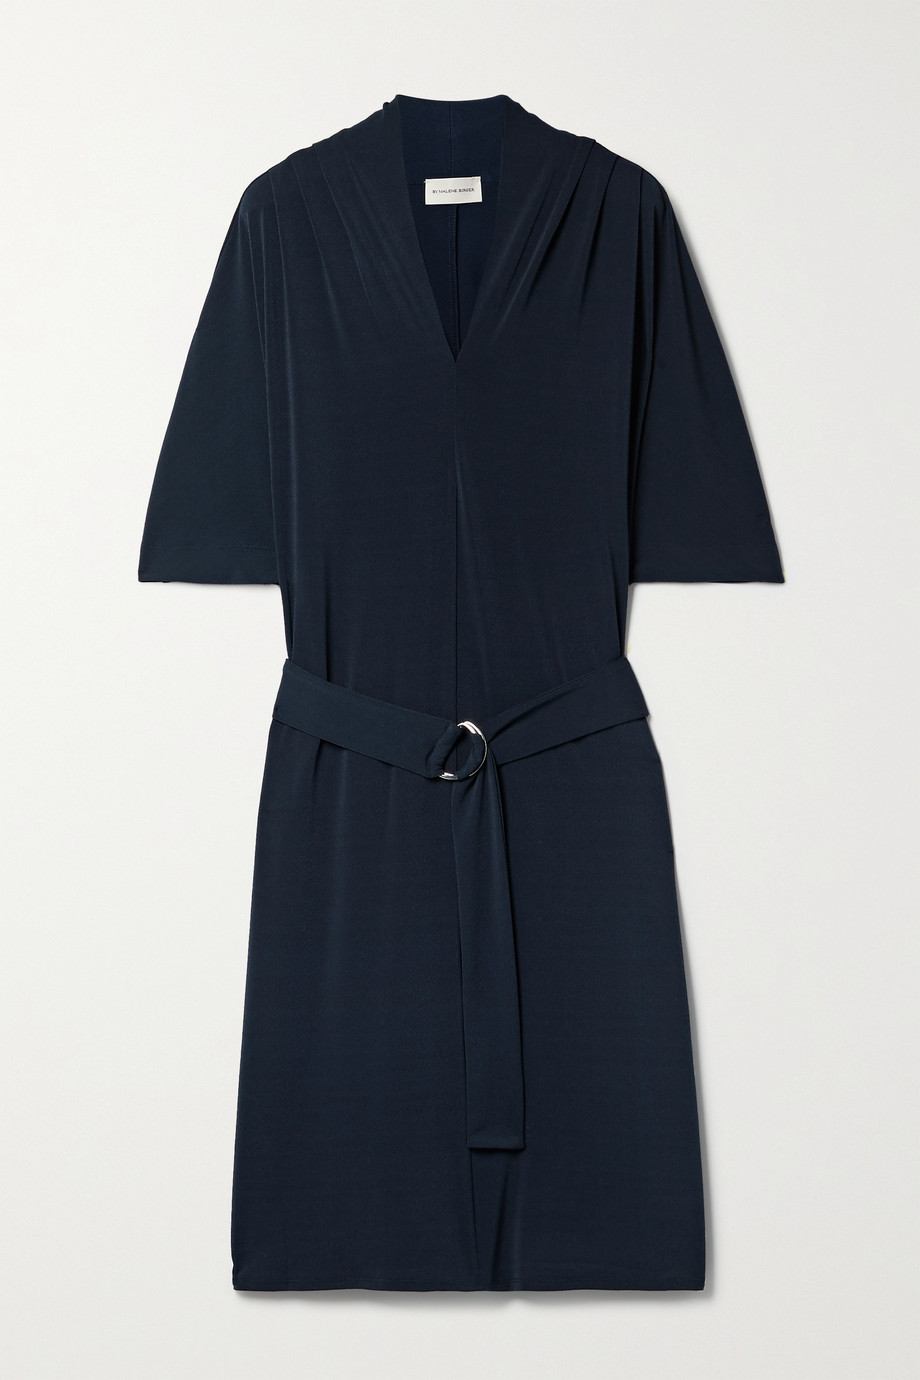 BY MALENE BIRGER Sora belted stretch-ponte mini dress